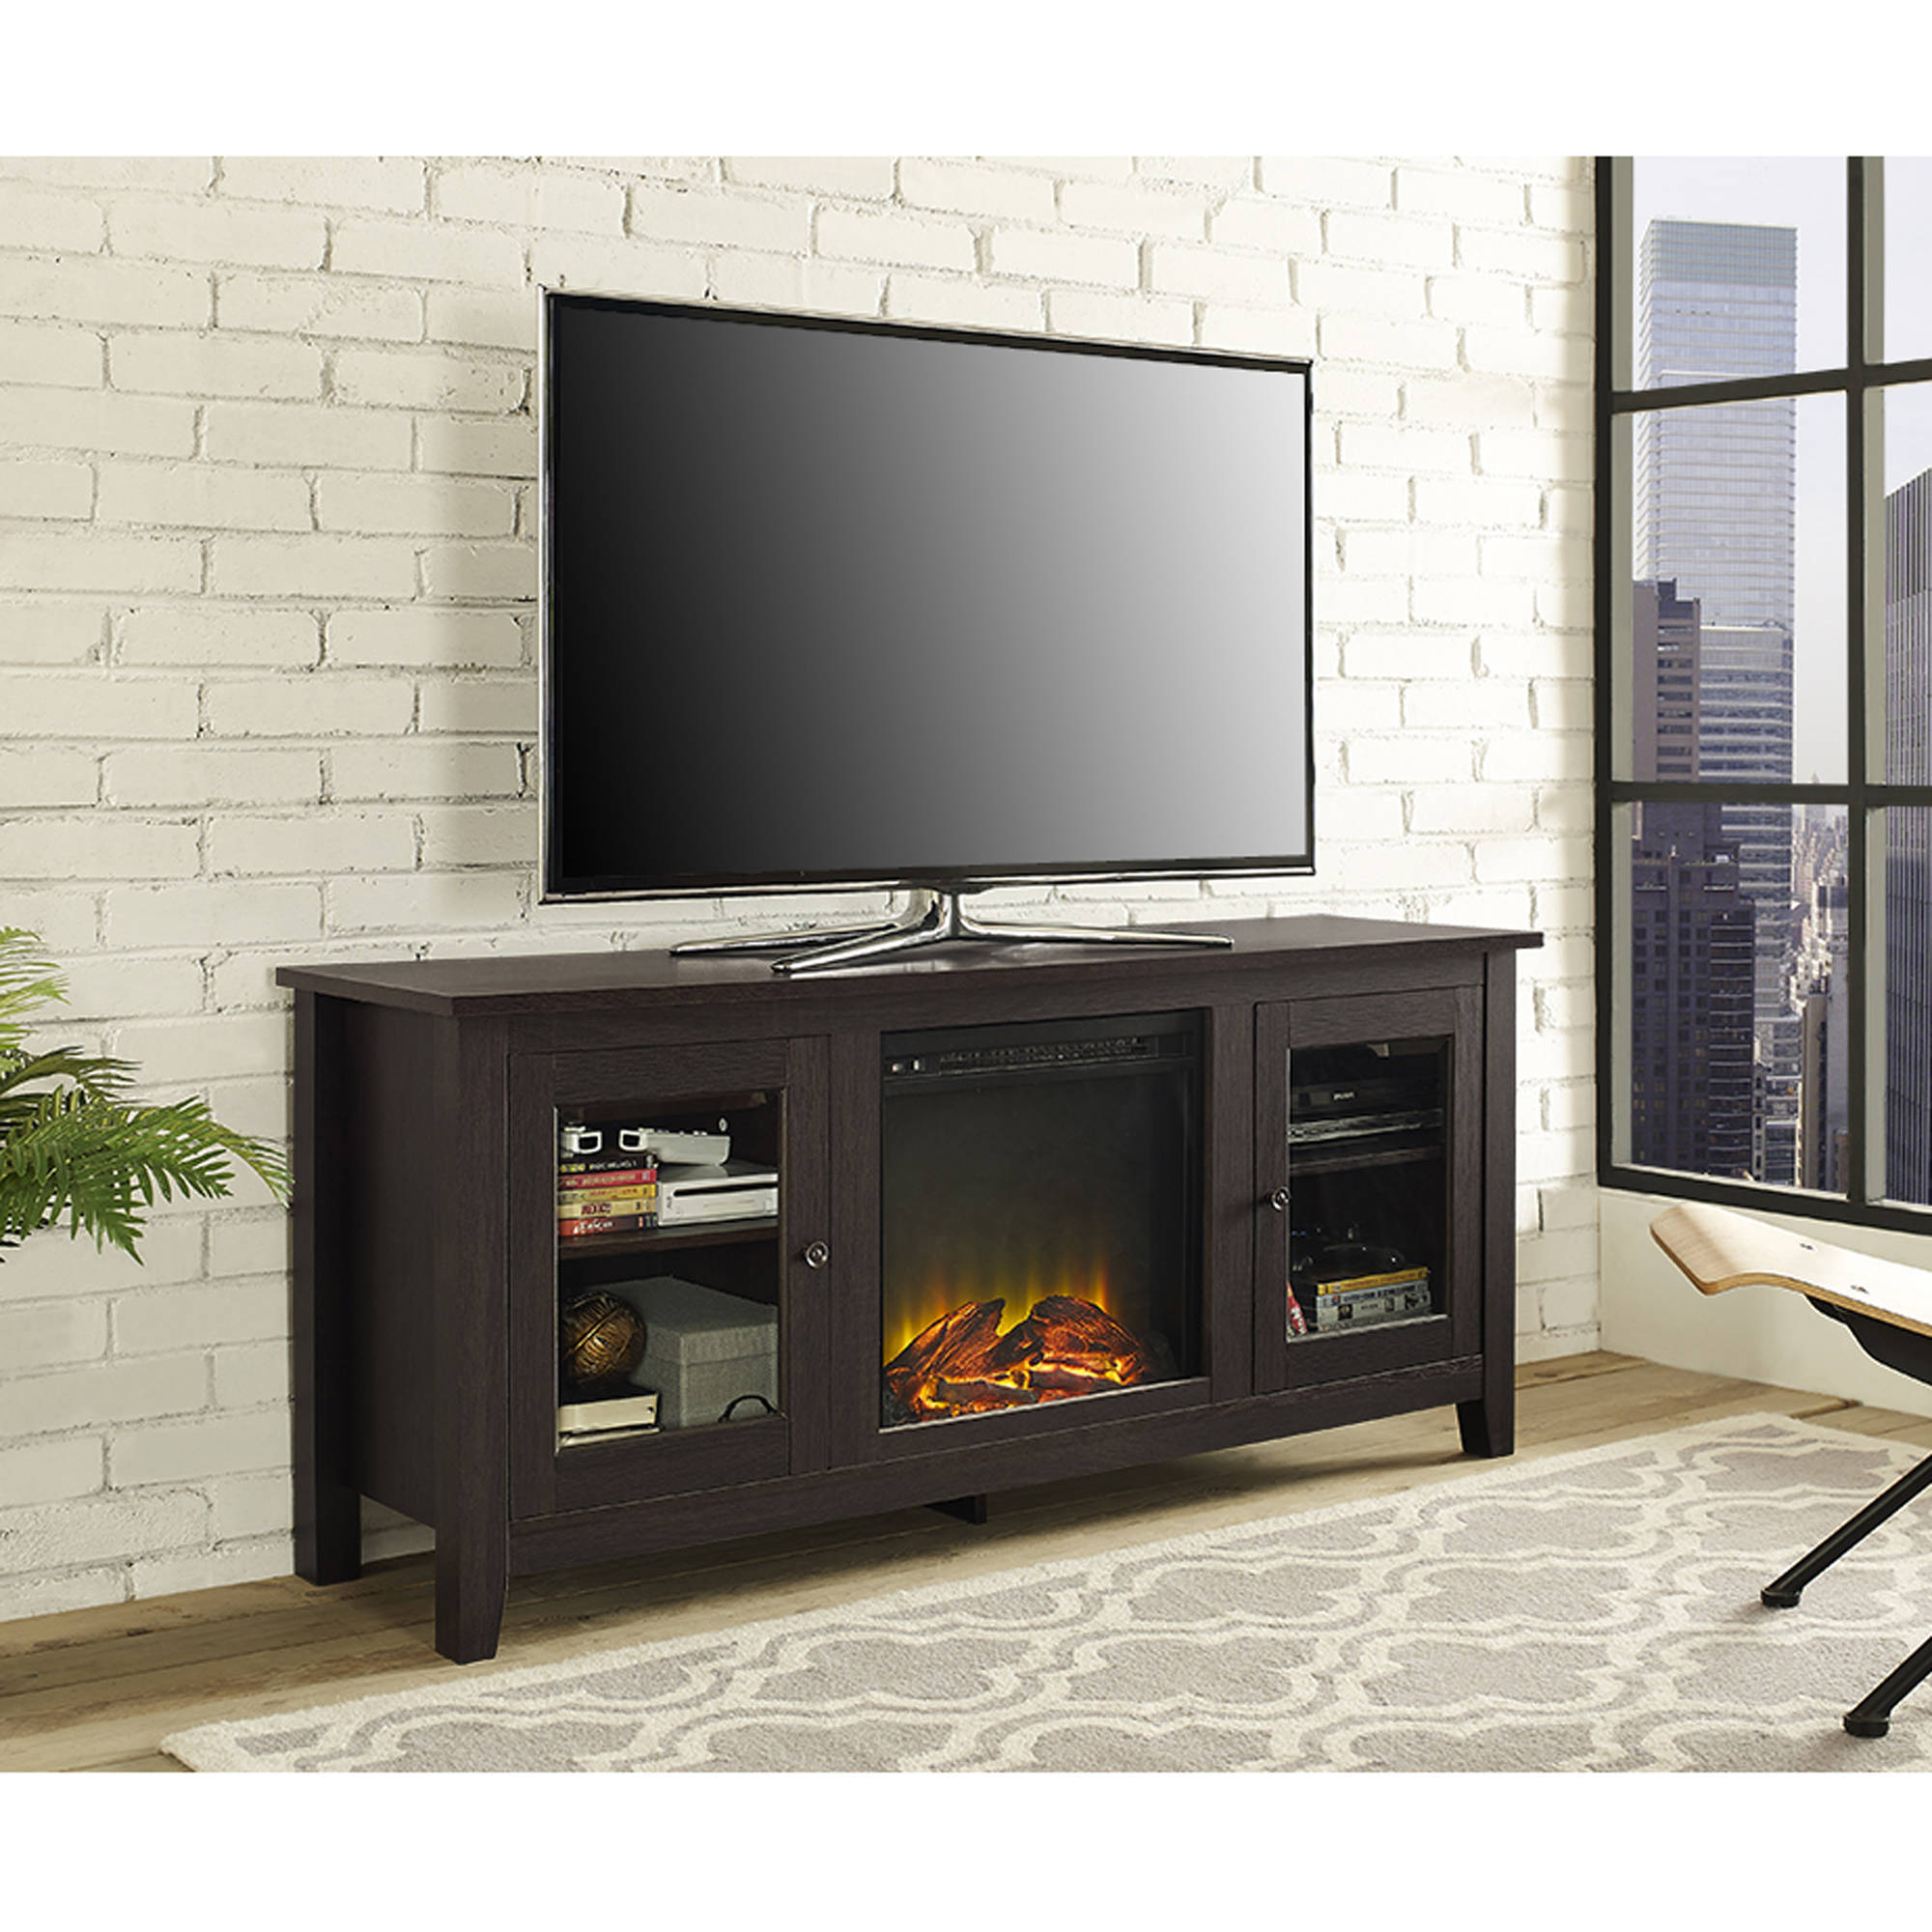 Tv Stands & Entertainment Centers – Walmart With Regard To Well Liked Low Corner Tv Stands (View 18 of 20)